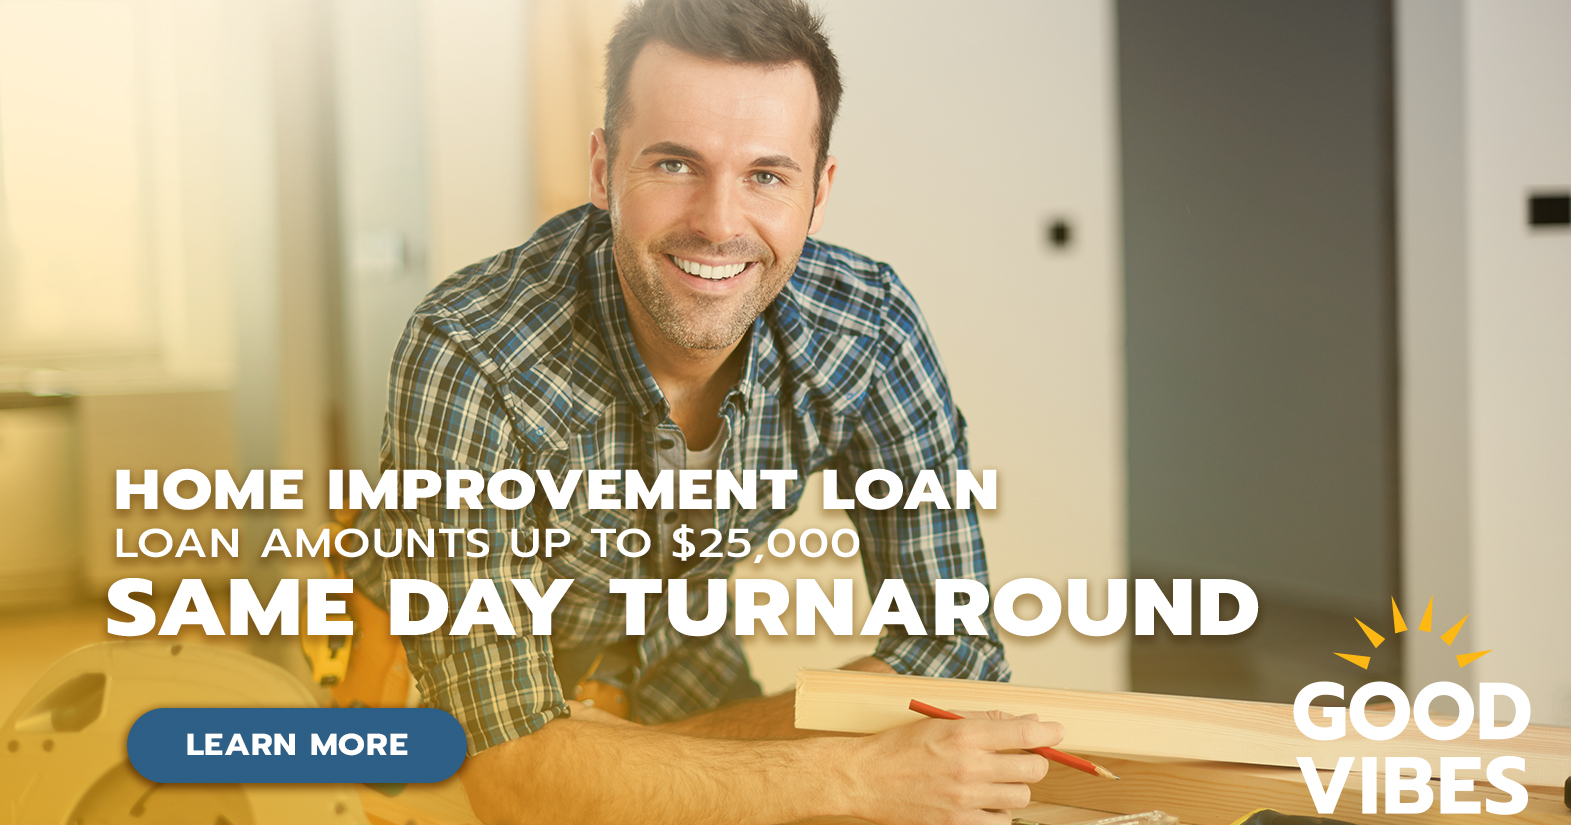 Guy constructing in his home promoting home improvement loan